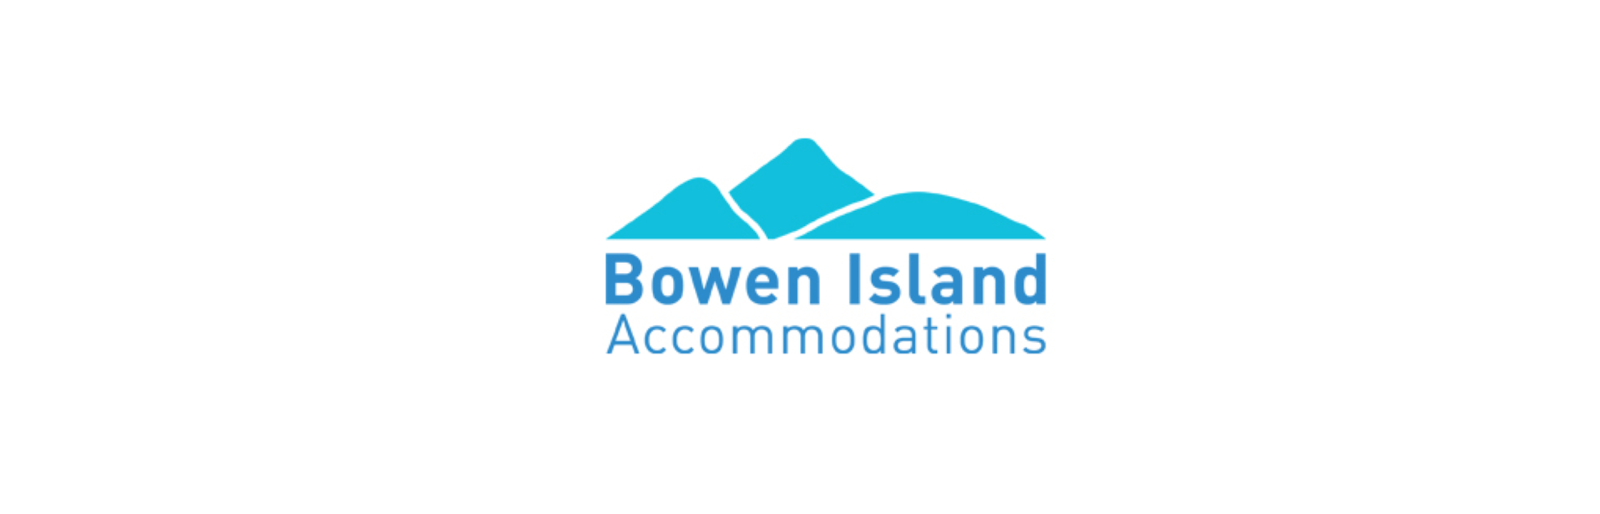 Bowen Island Accommodations